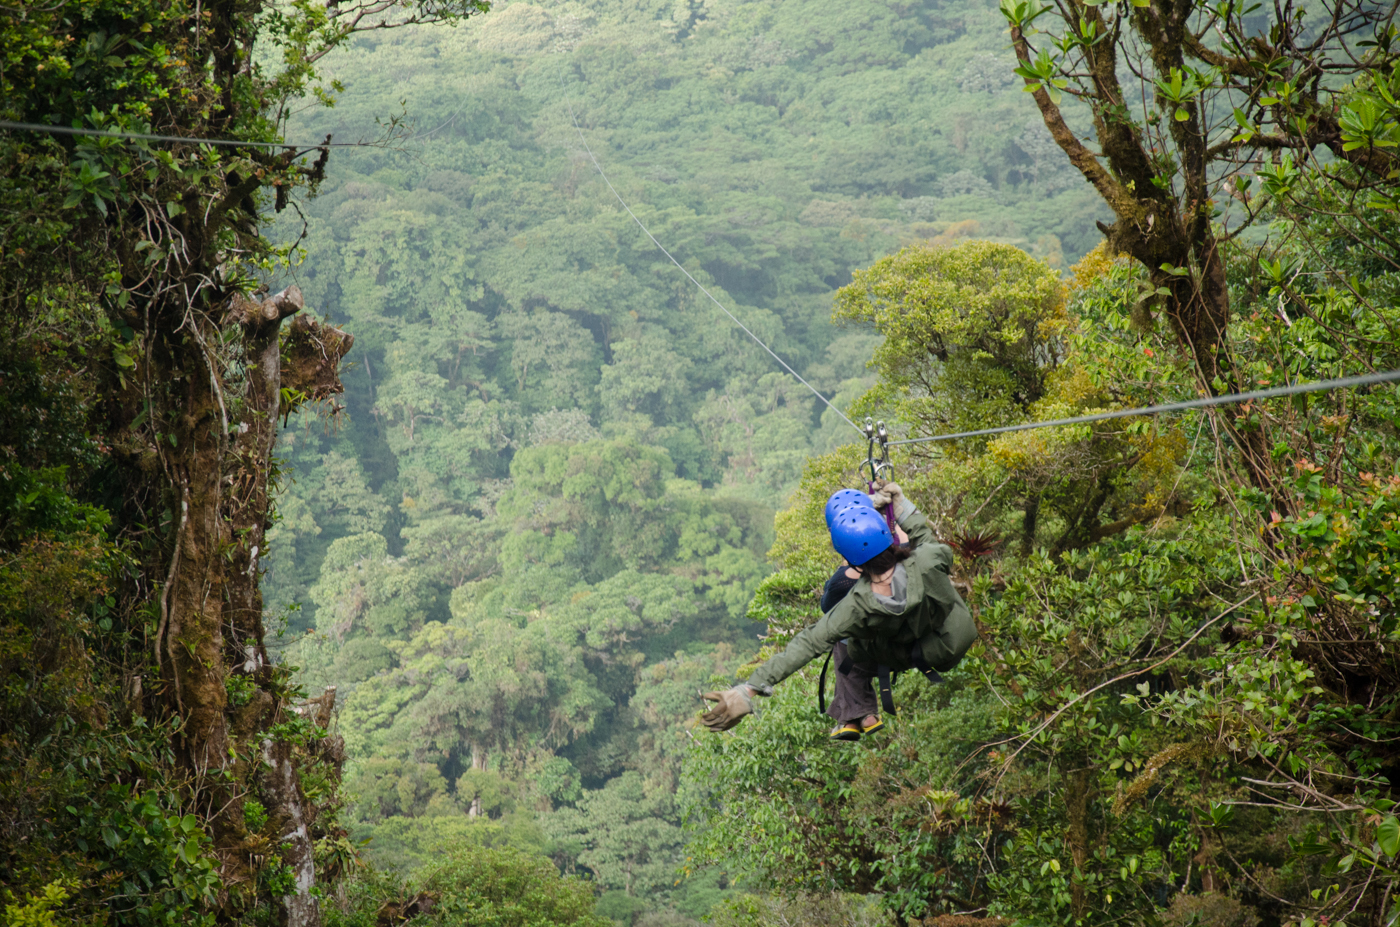 Ziplining in Monteverde Cloud Forest, Costa Rica